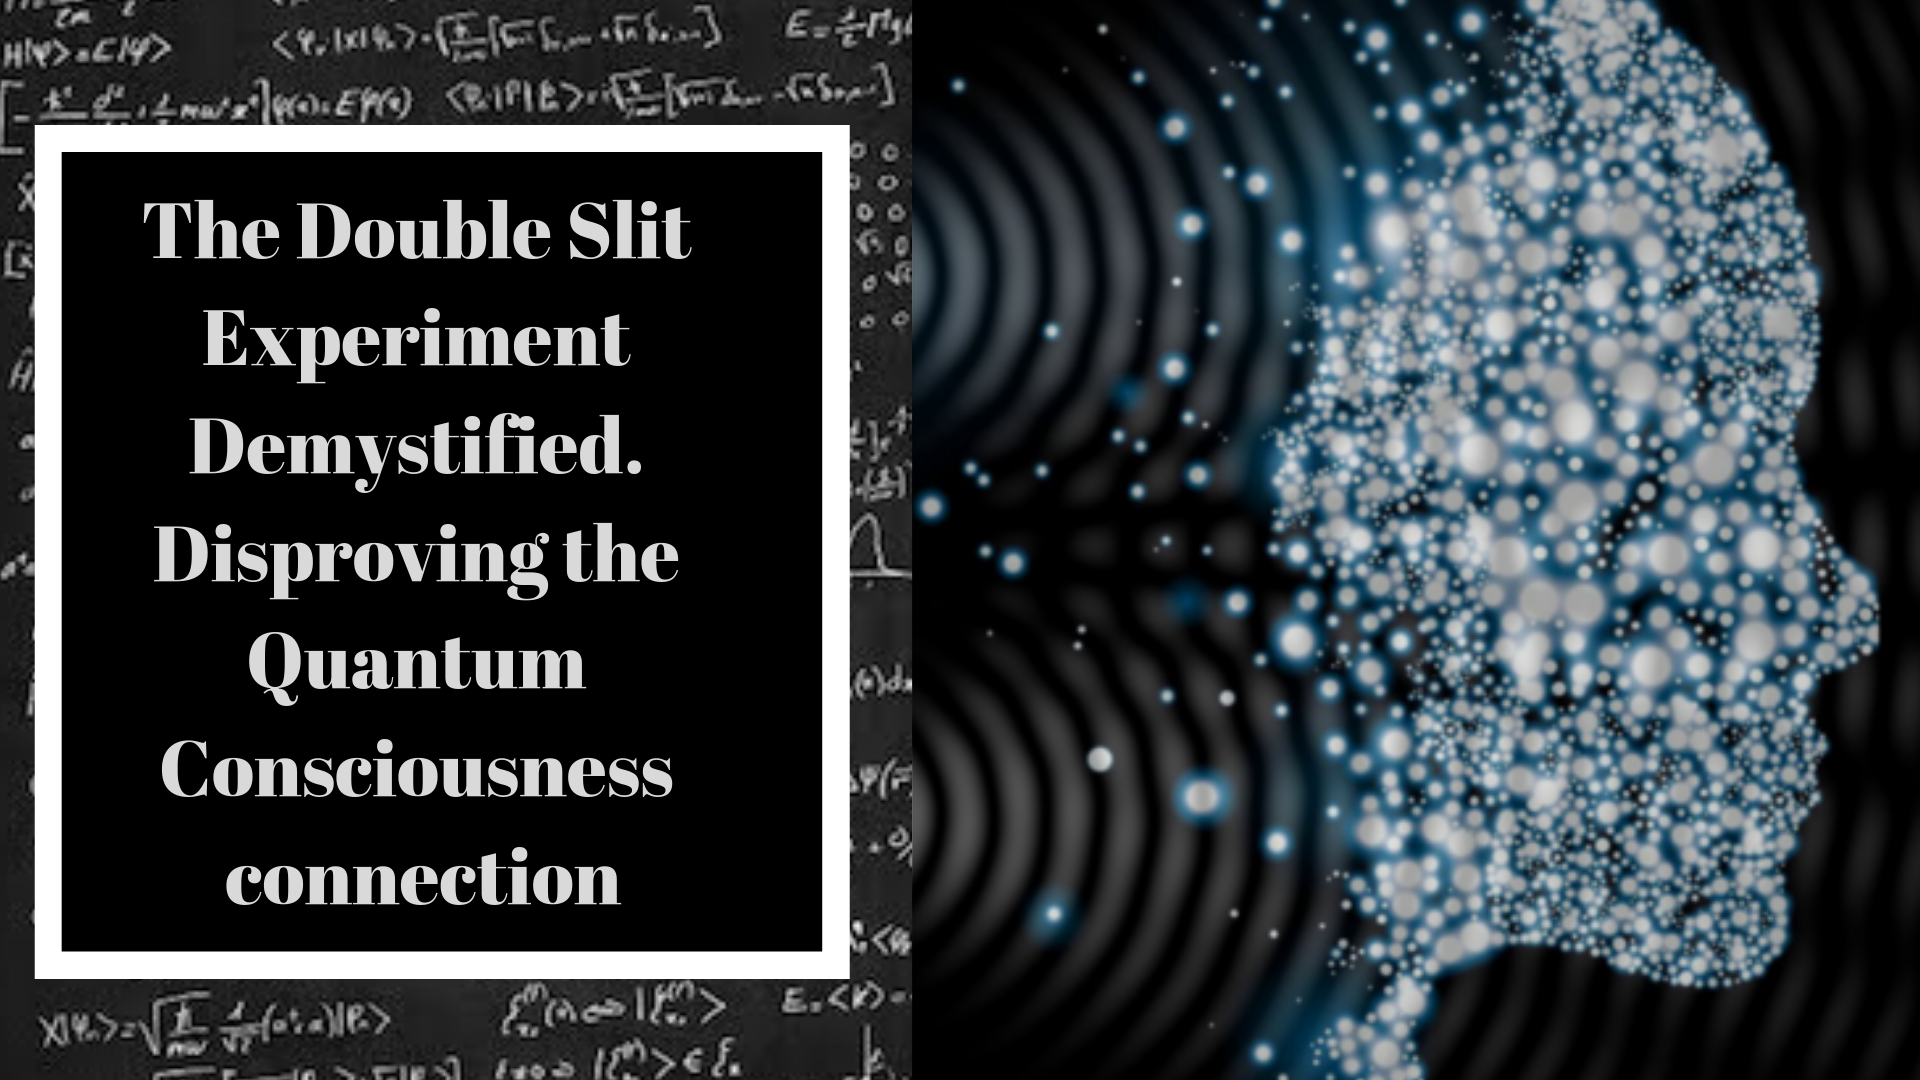 The Double Slit Experiment Demystified  Disproving the Quantum